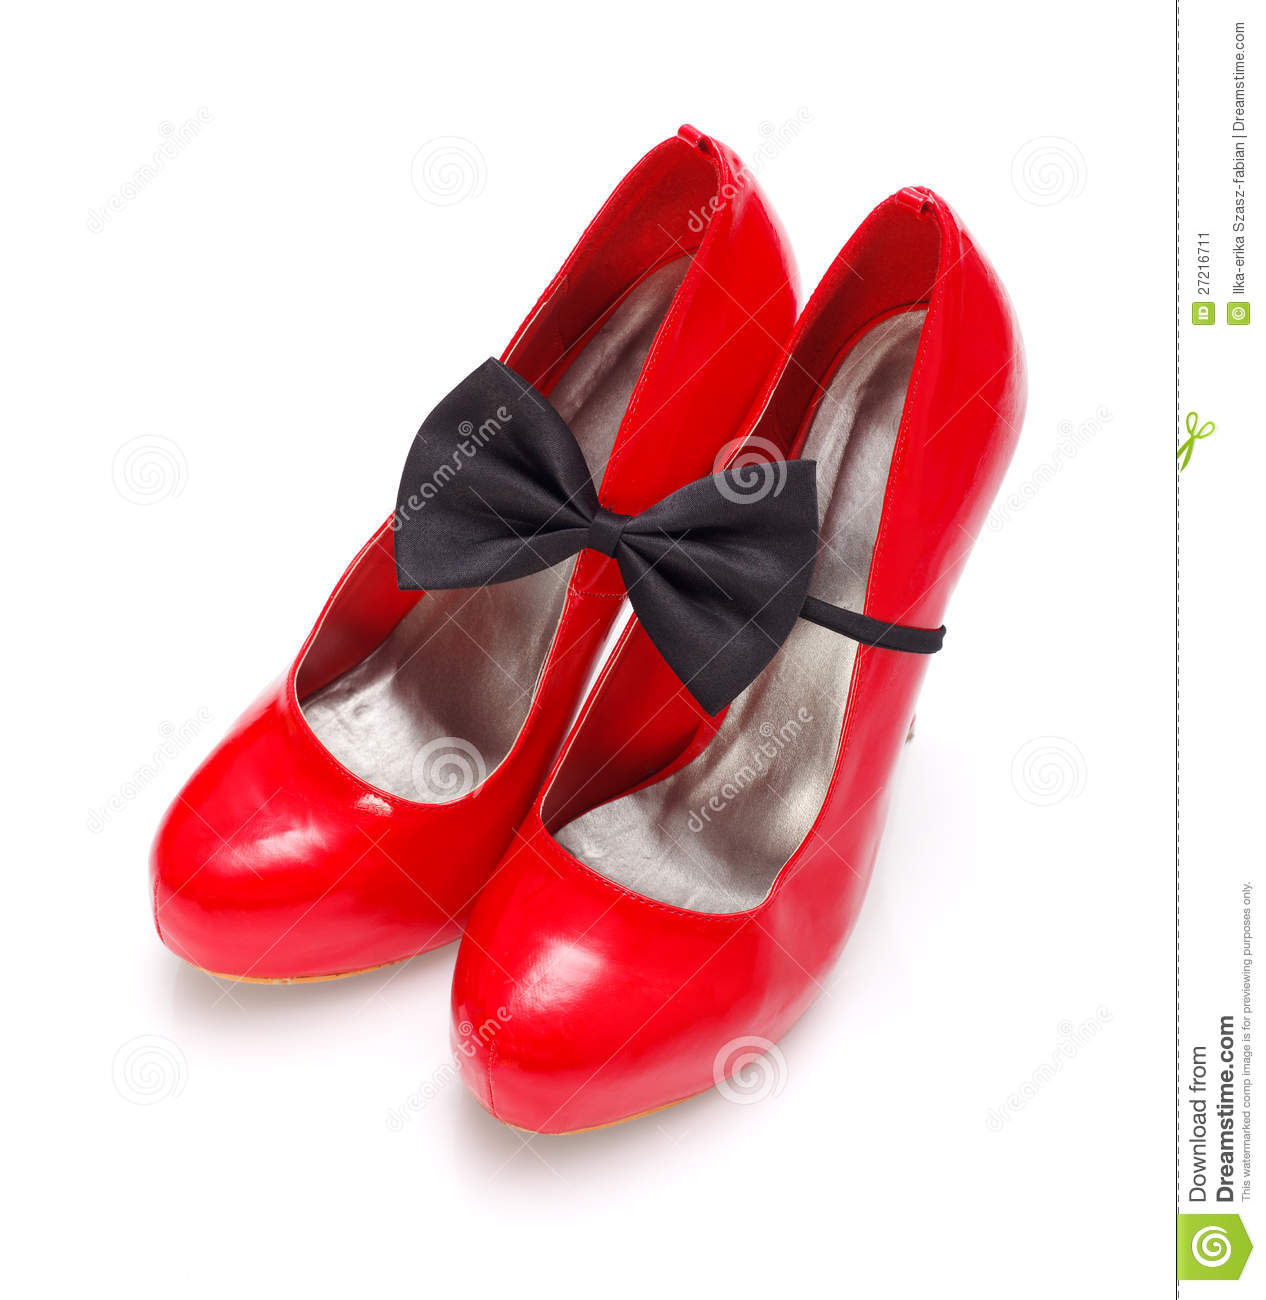 Red Woman Shoes Royalty Free Stock Photography - Image: 35057047